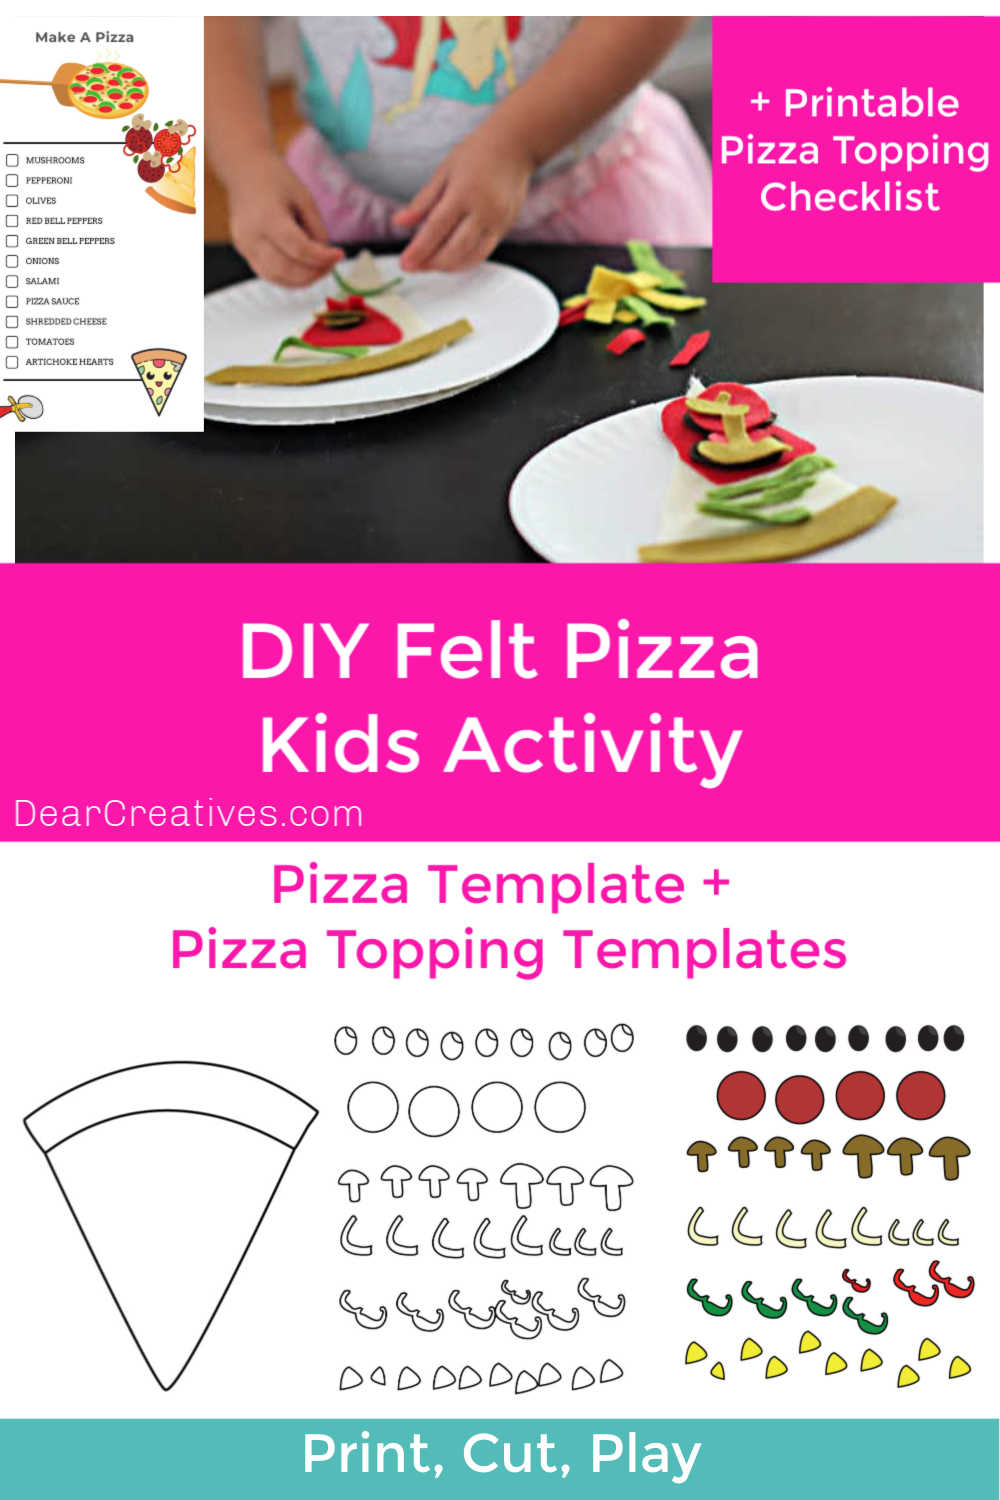 Felt Pizza Kids Activity + Free Printable Pizza Templates!